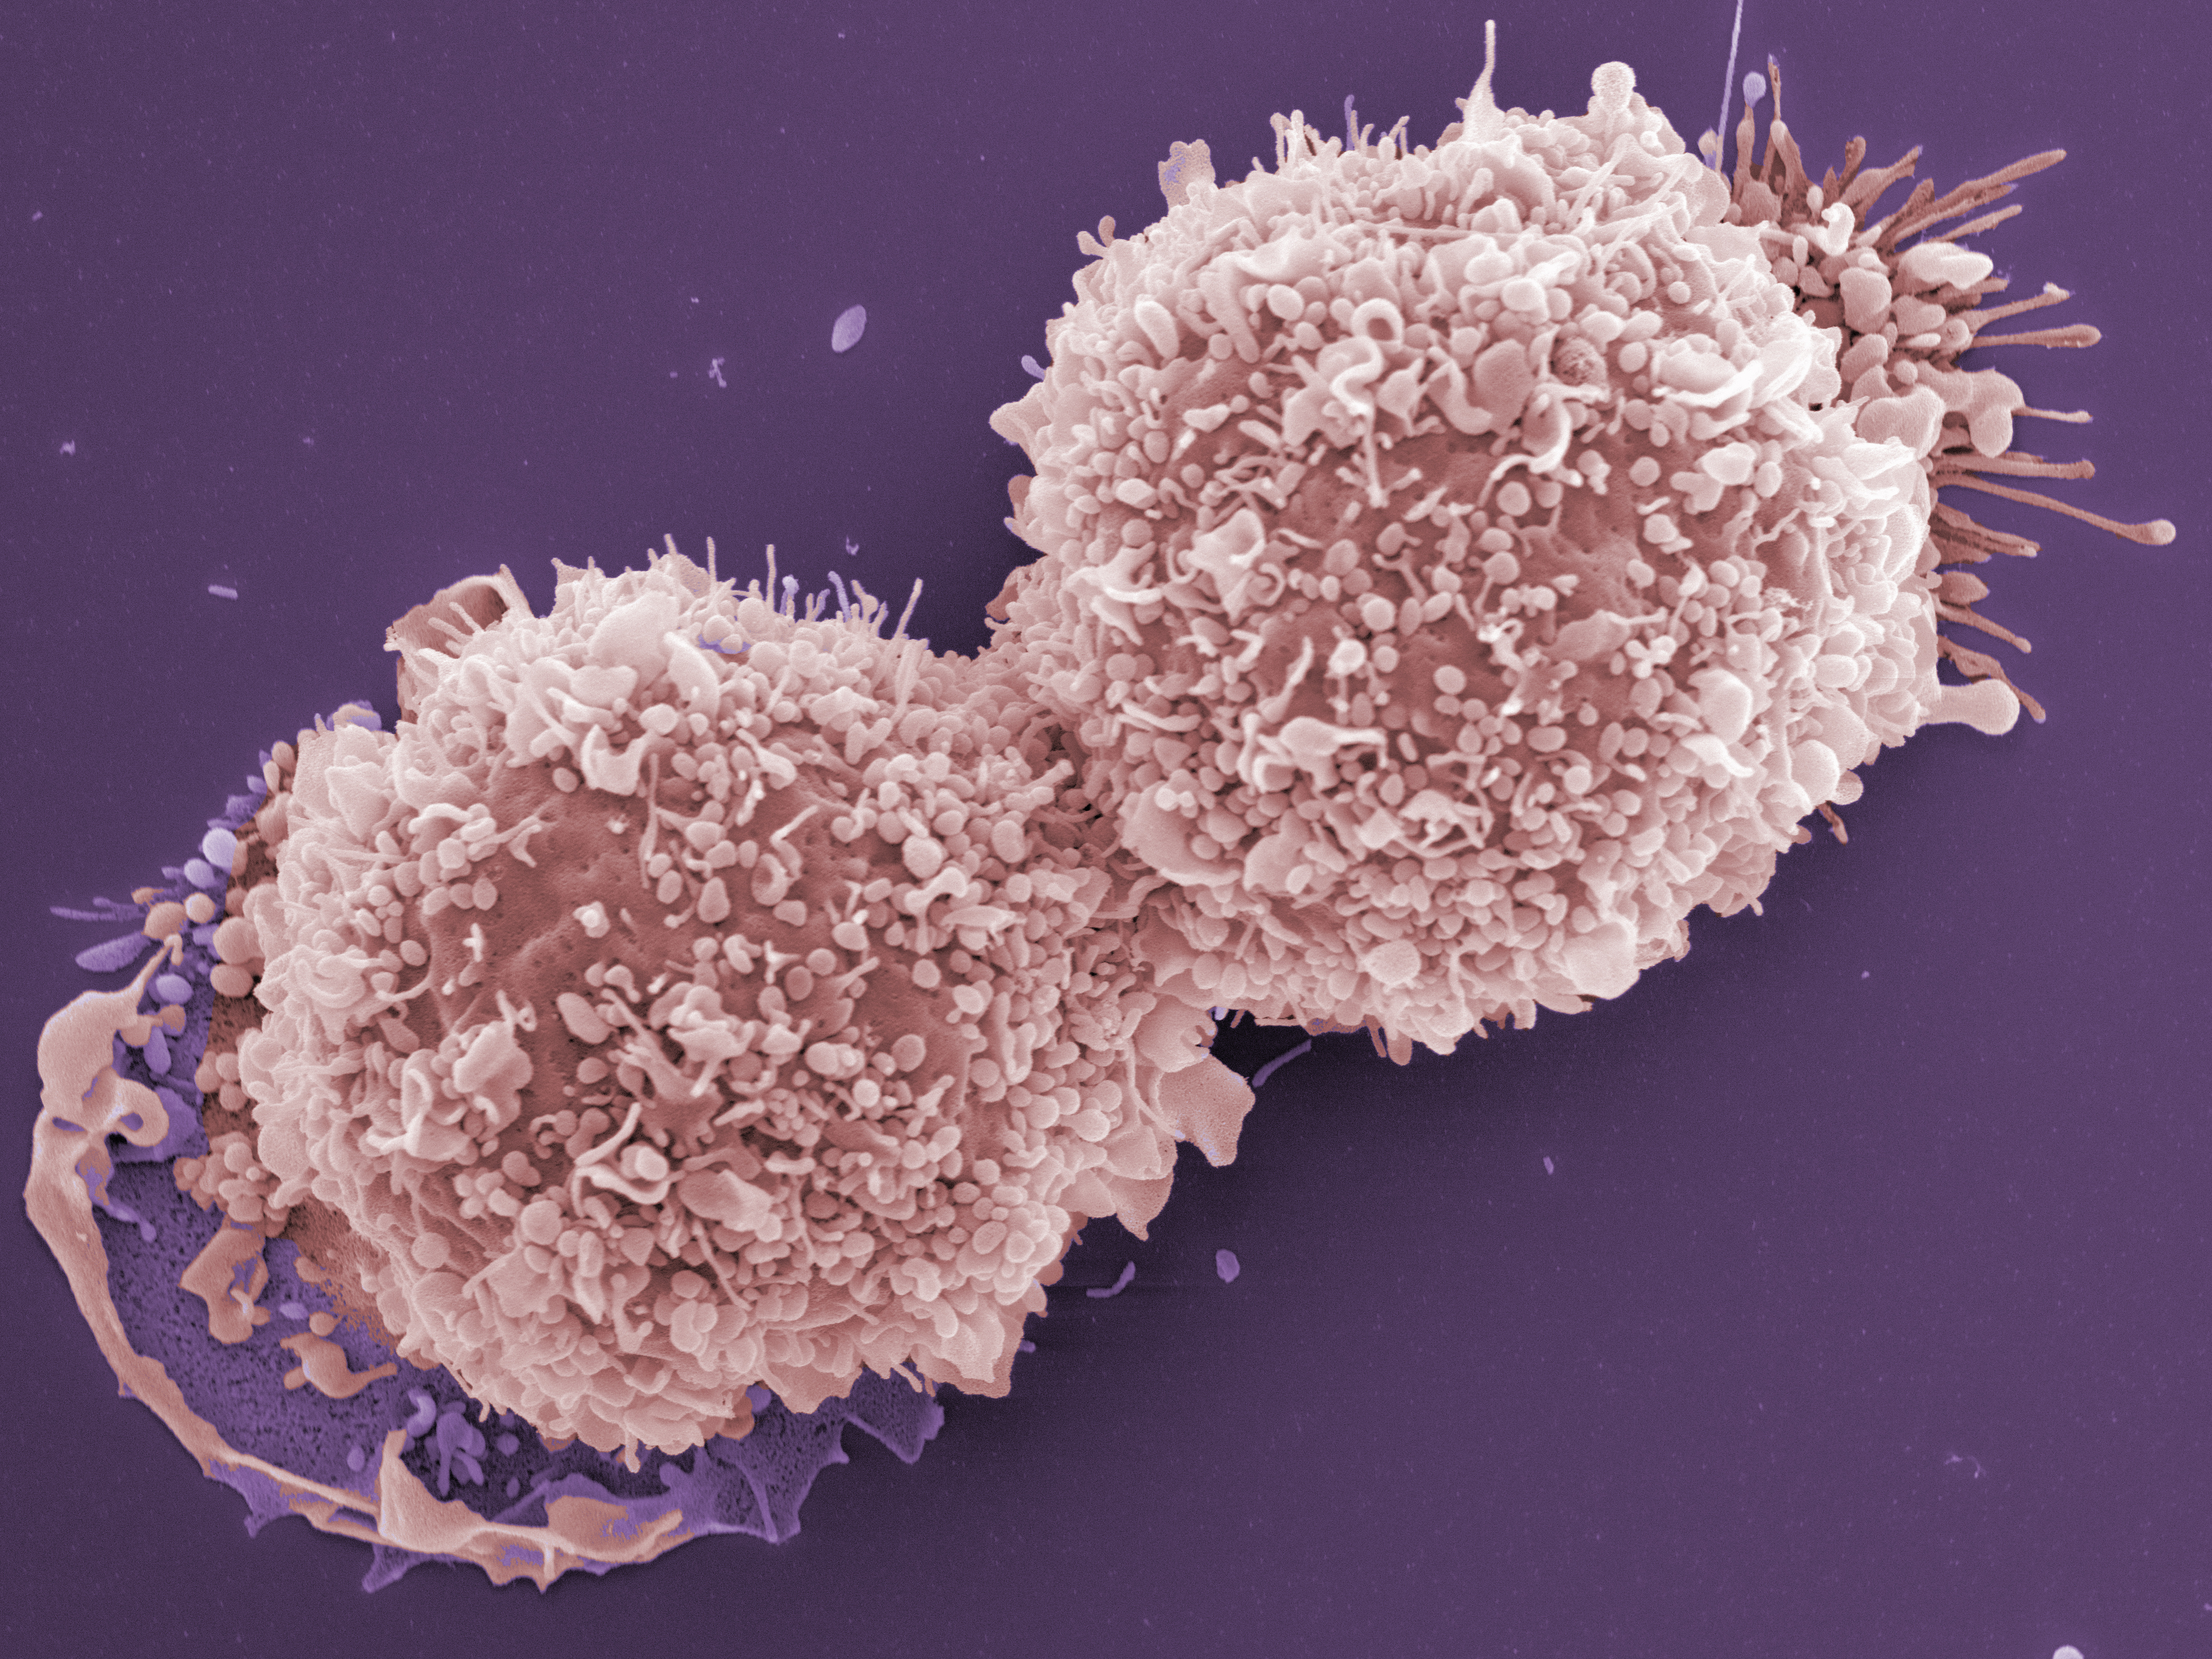 Genetic screening could identify women at highest risk of developing breast cancer